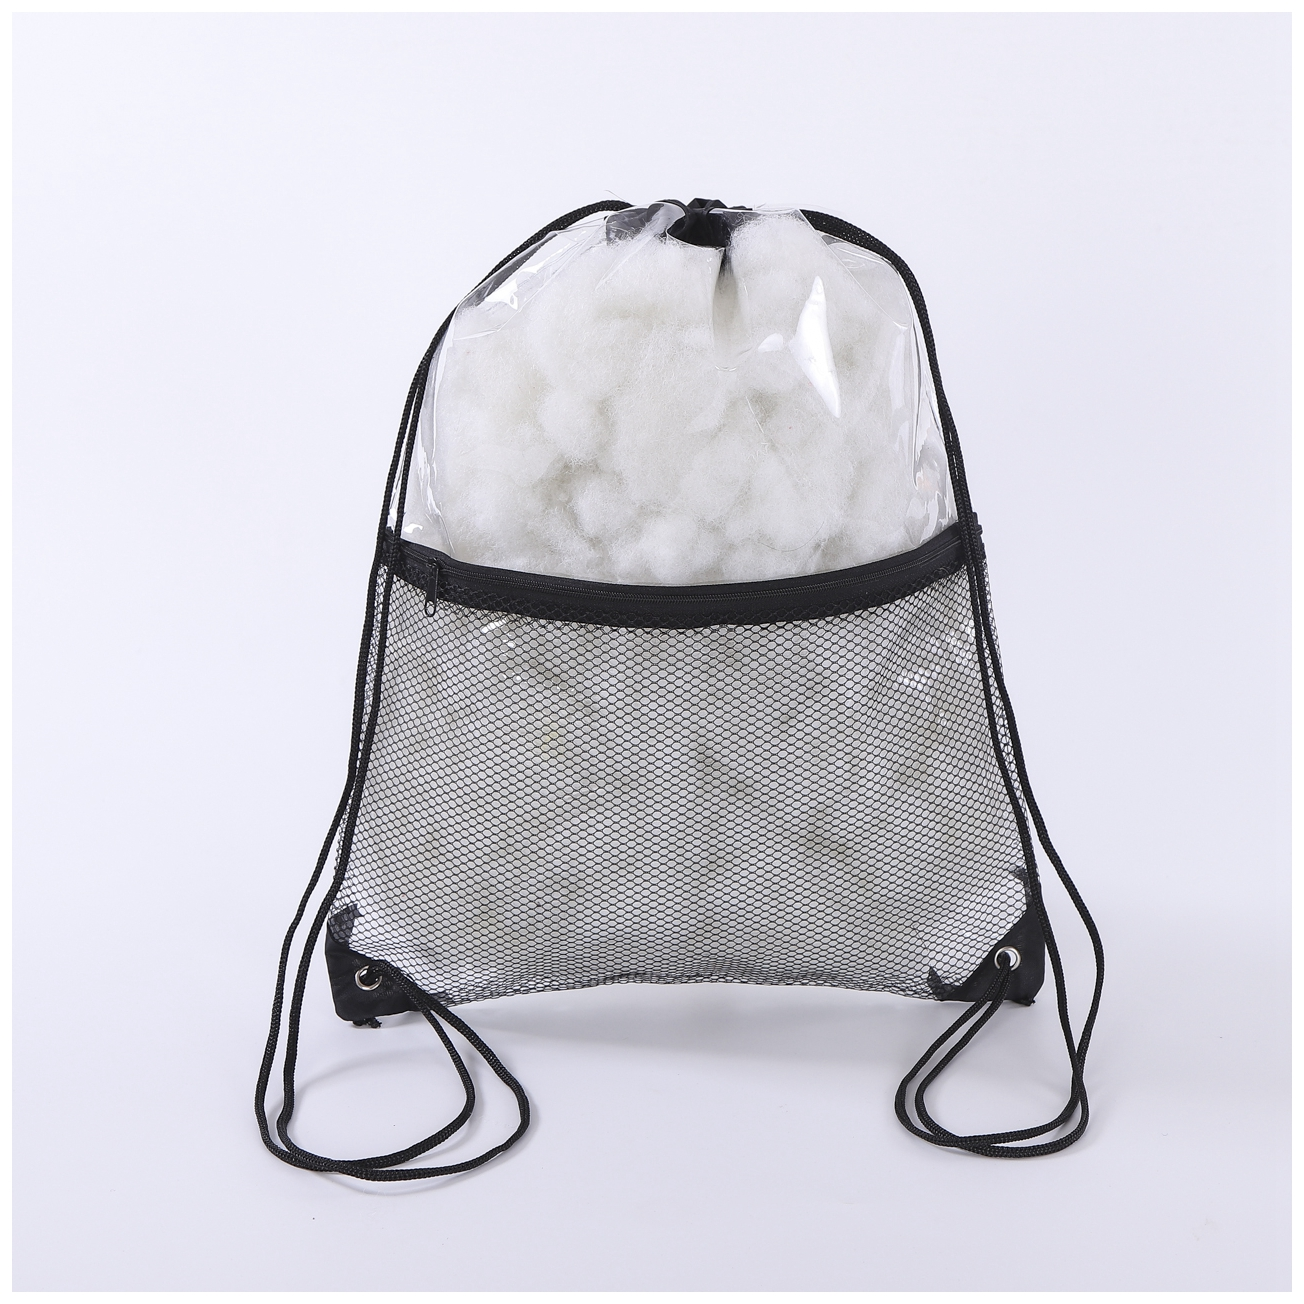 Clear Plastic PVC Drawstring Bags With Rope Handle